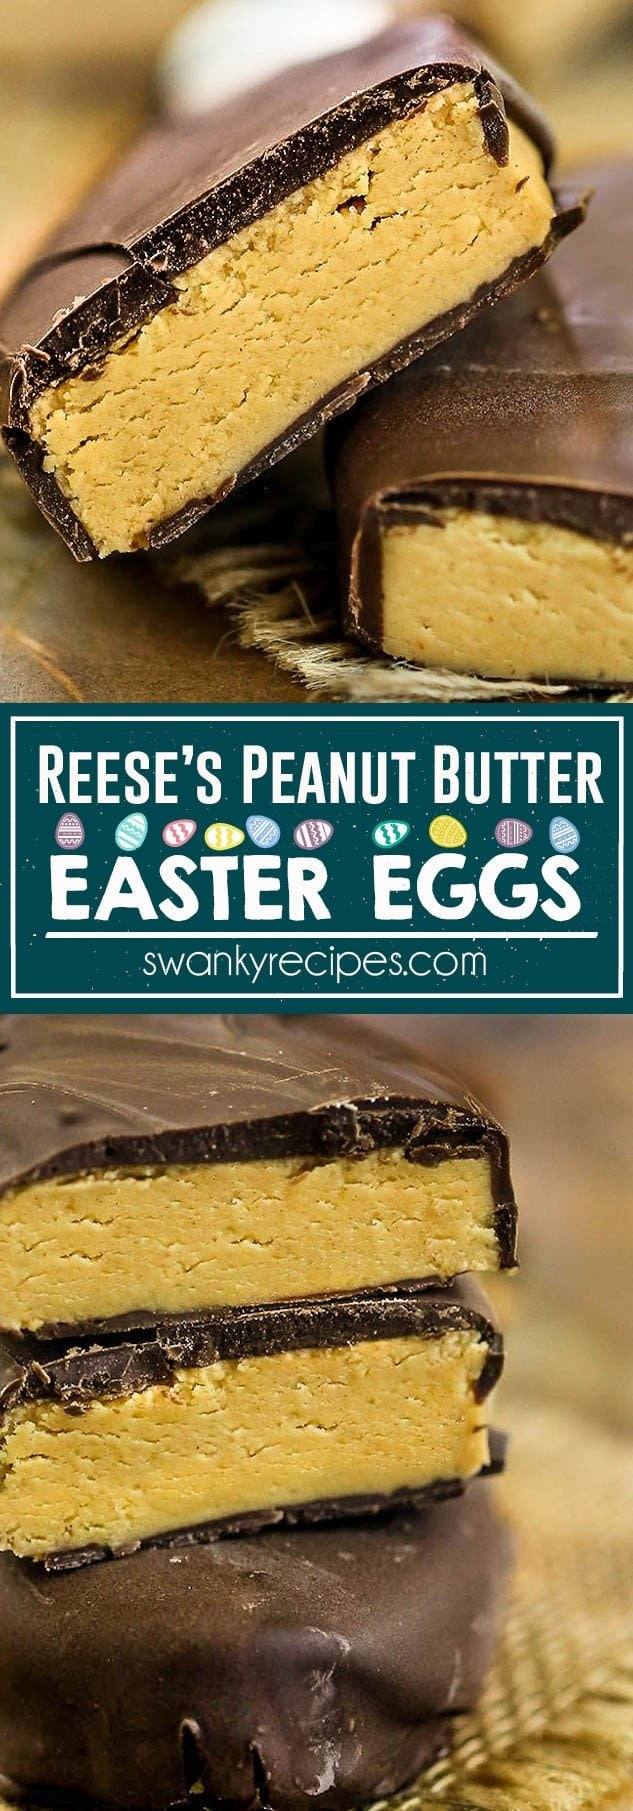 Reeses Peanut Butter Easter Eggs - Copycat Peanut Butter Cup Easter Eggs. A quick homemade version to make for Easter candy with peanut butter and chocolate.